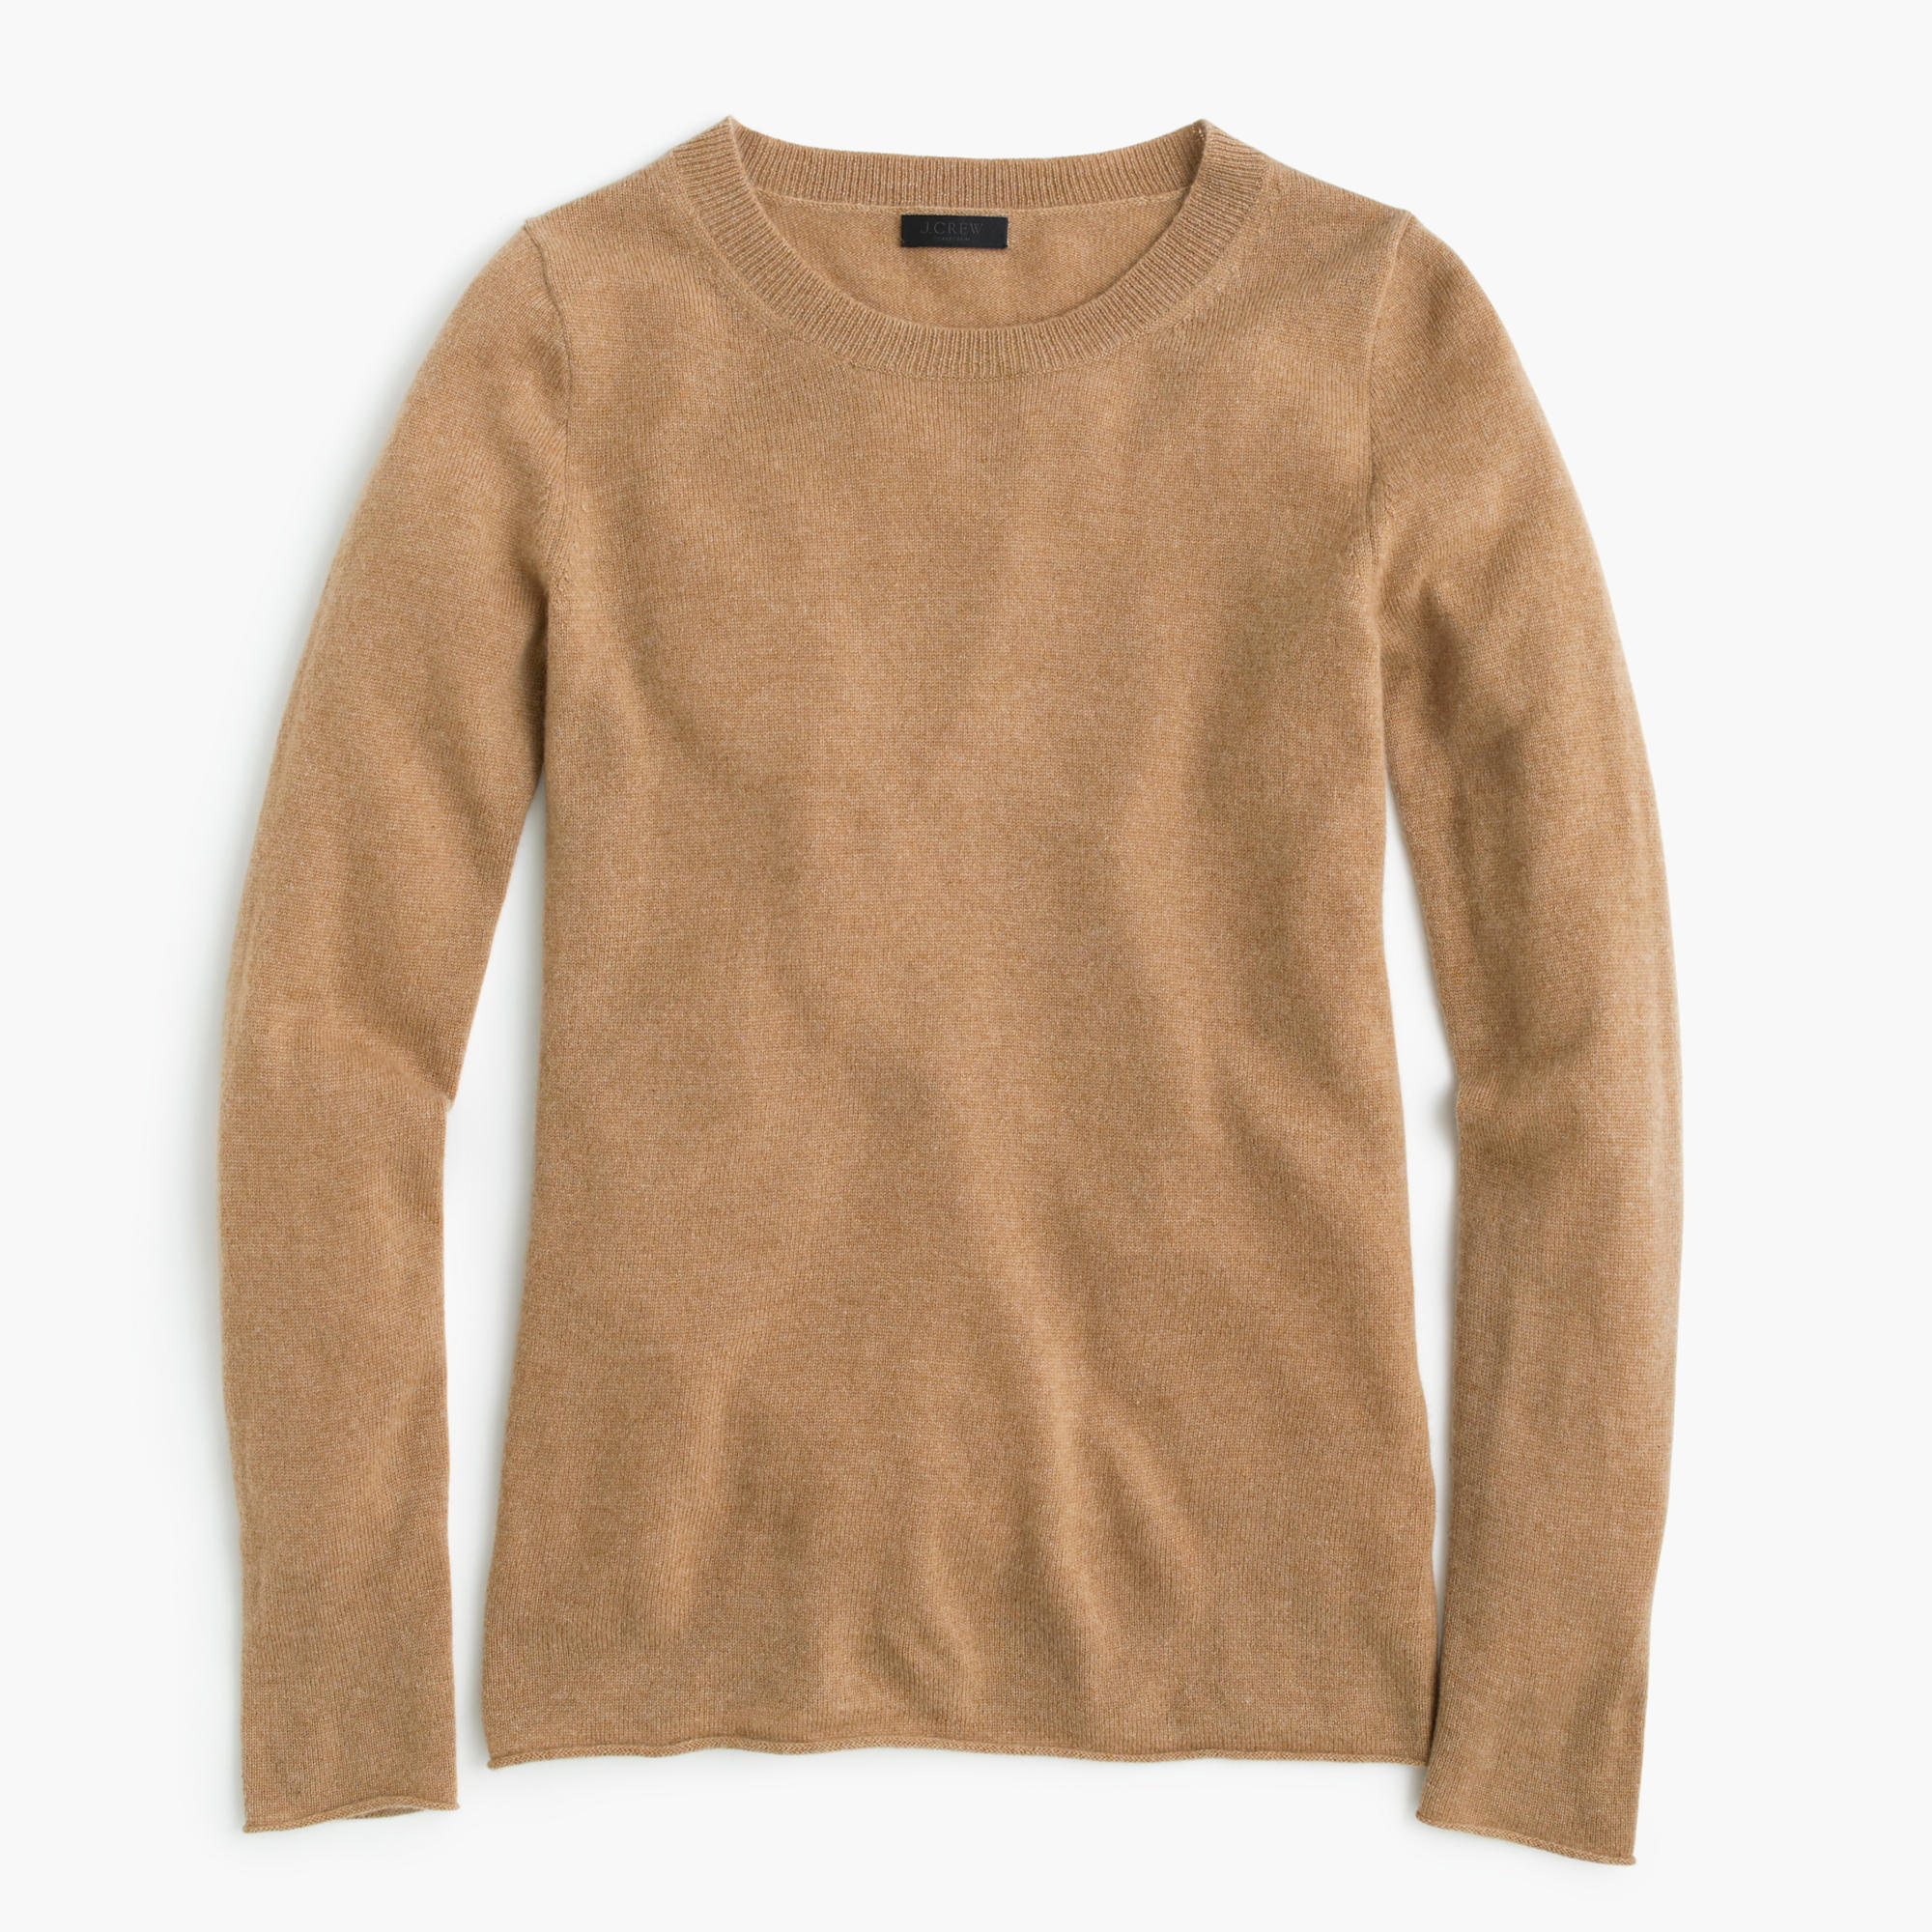 Jcrew Sweater in Camel